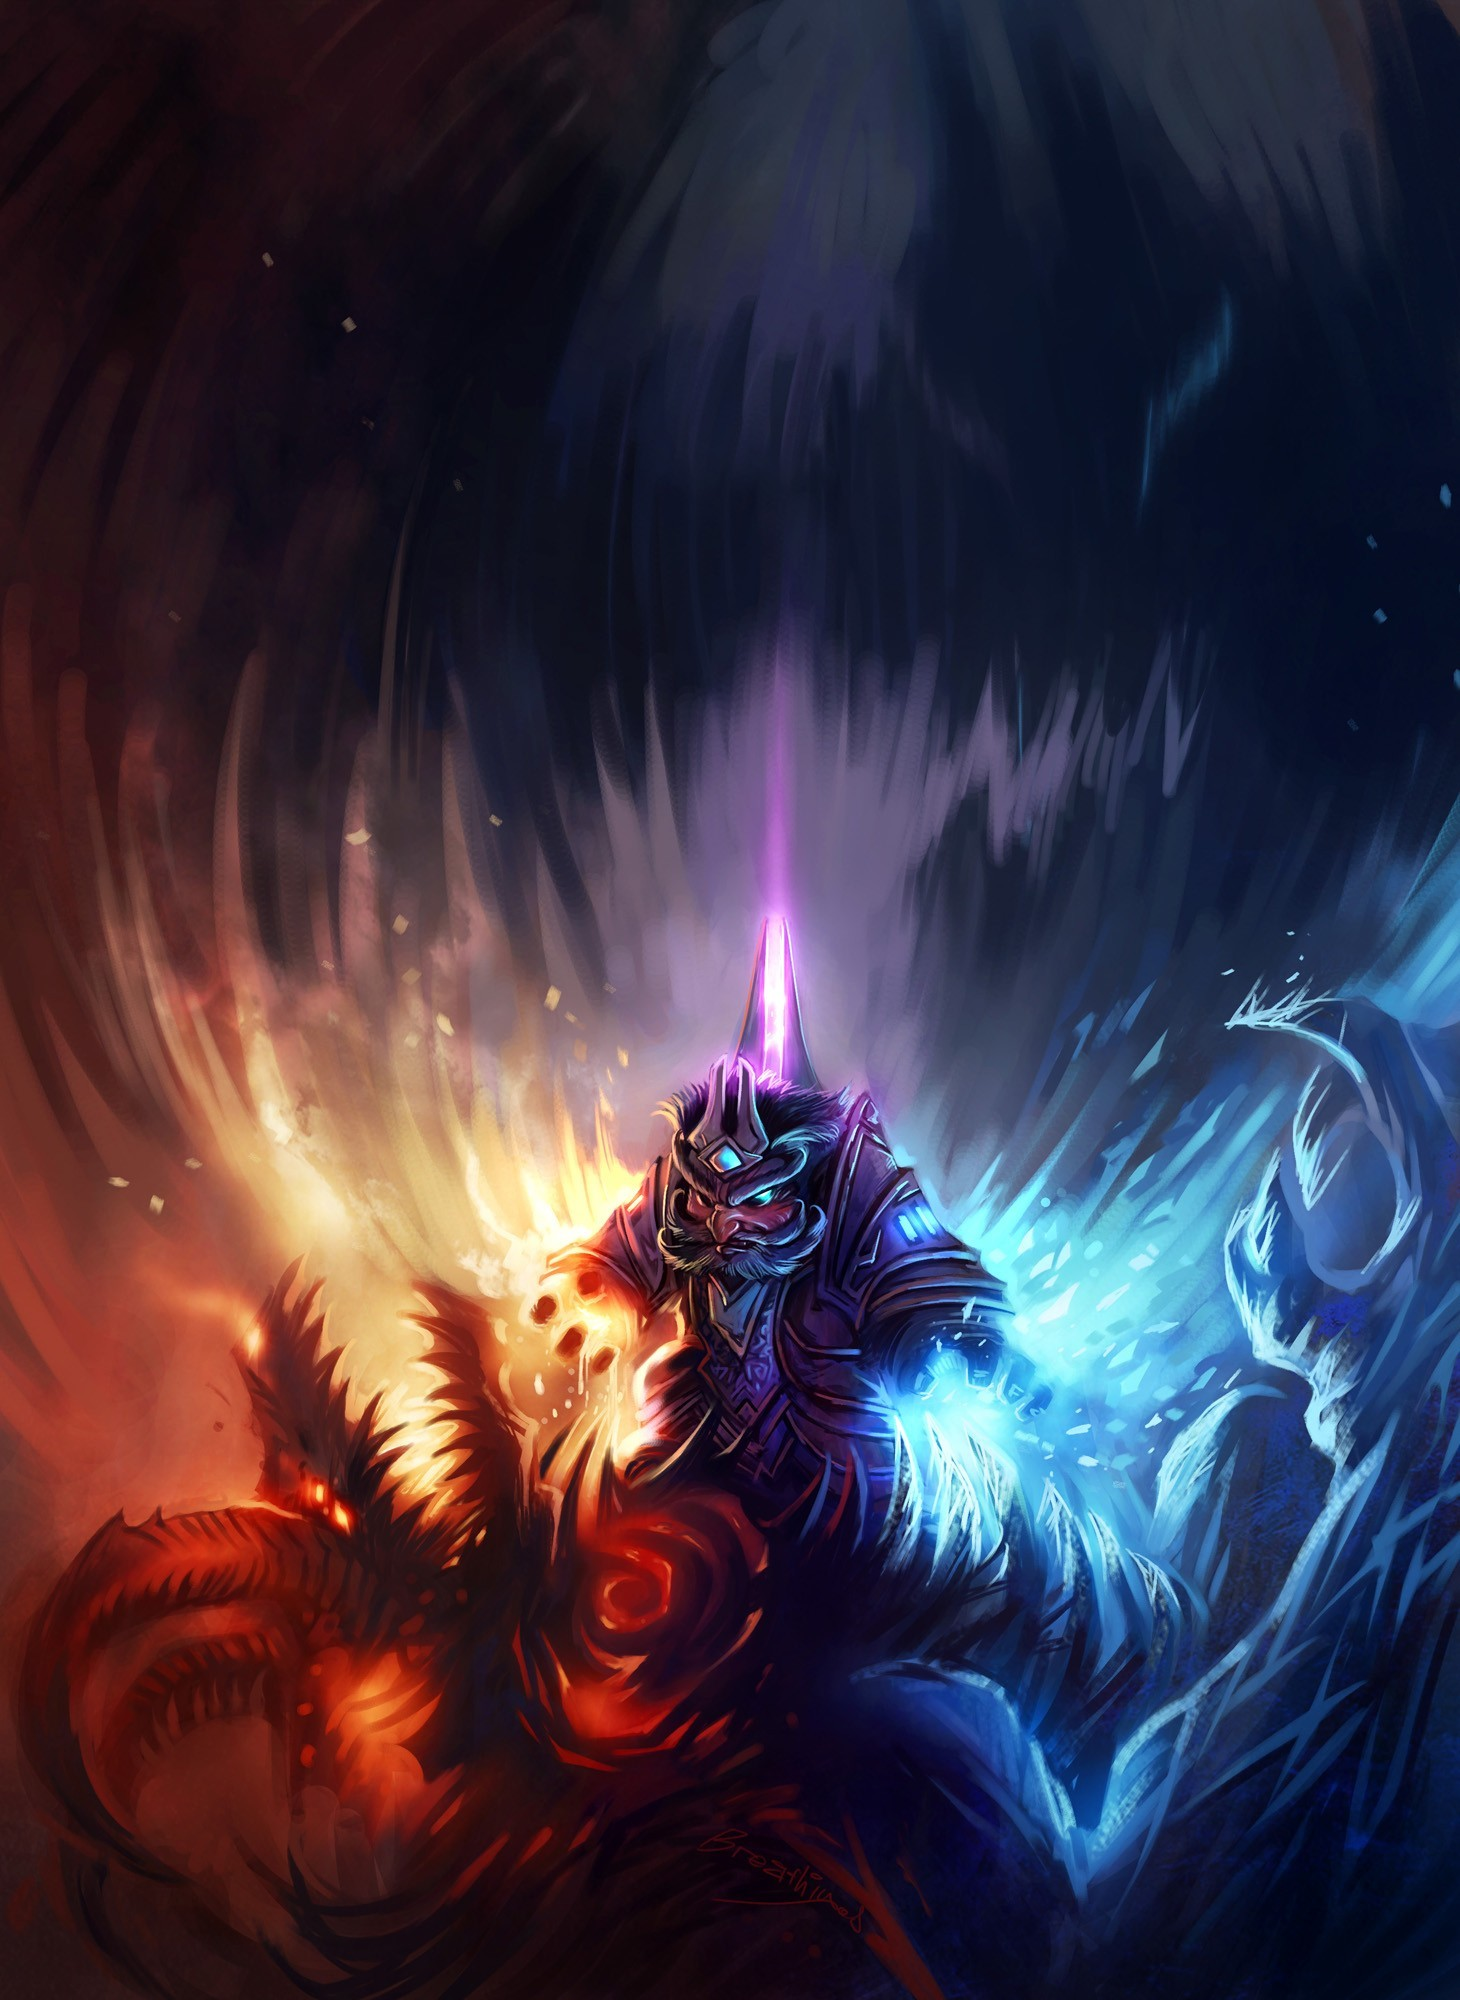 mage video games world HD Wallpaper